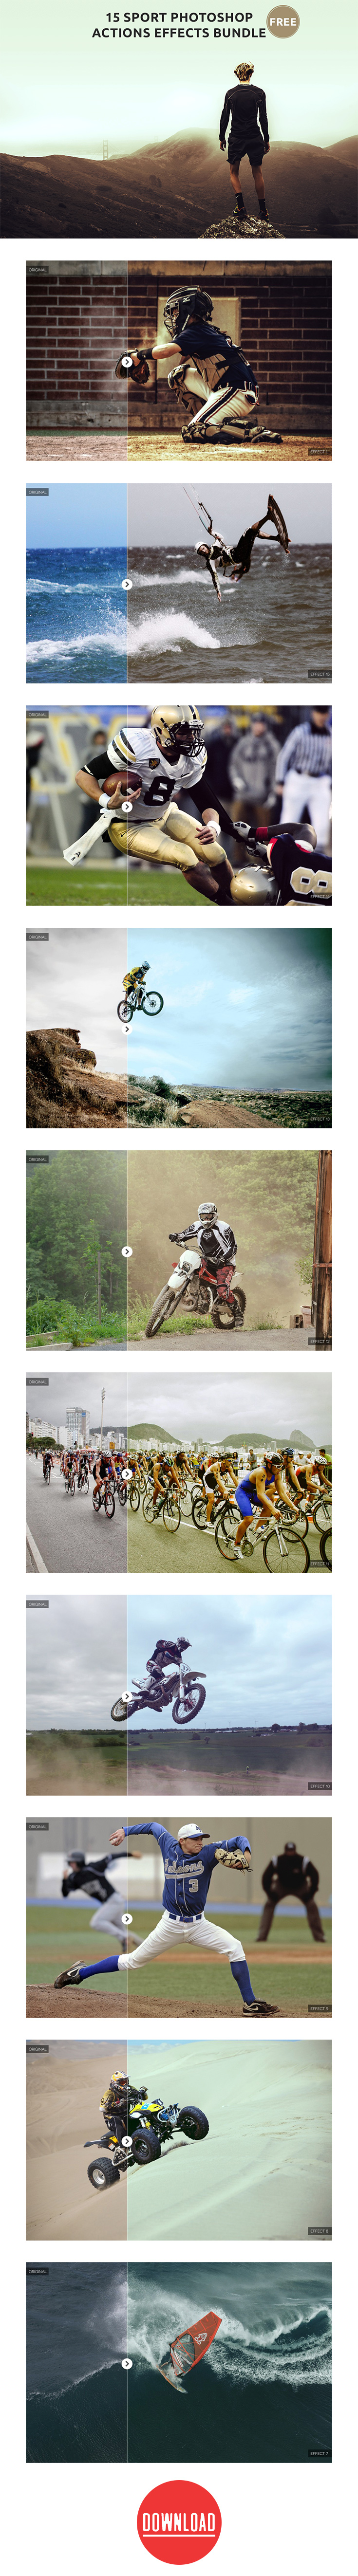 #Sports #Photo Effects #Photoshop actions bundle was first created by us and was very popular and it still is trending and an amazing tool that not only lets you create amazing photos & graphics but also helps you to automate your work and save your time. These Photoshop action will help you achieve that cool sharp look.